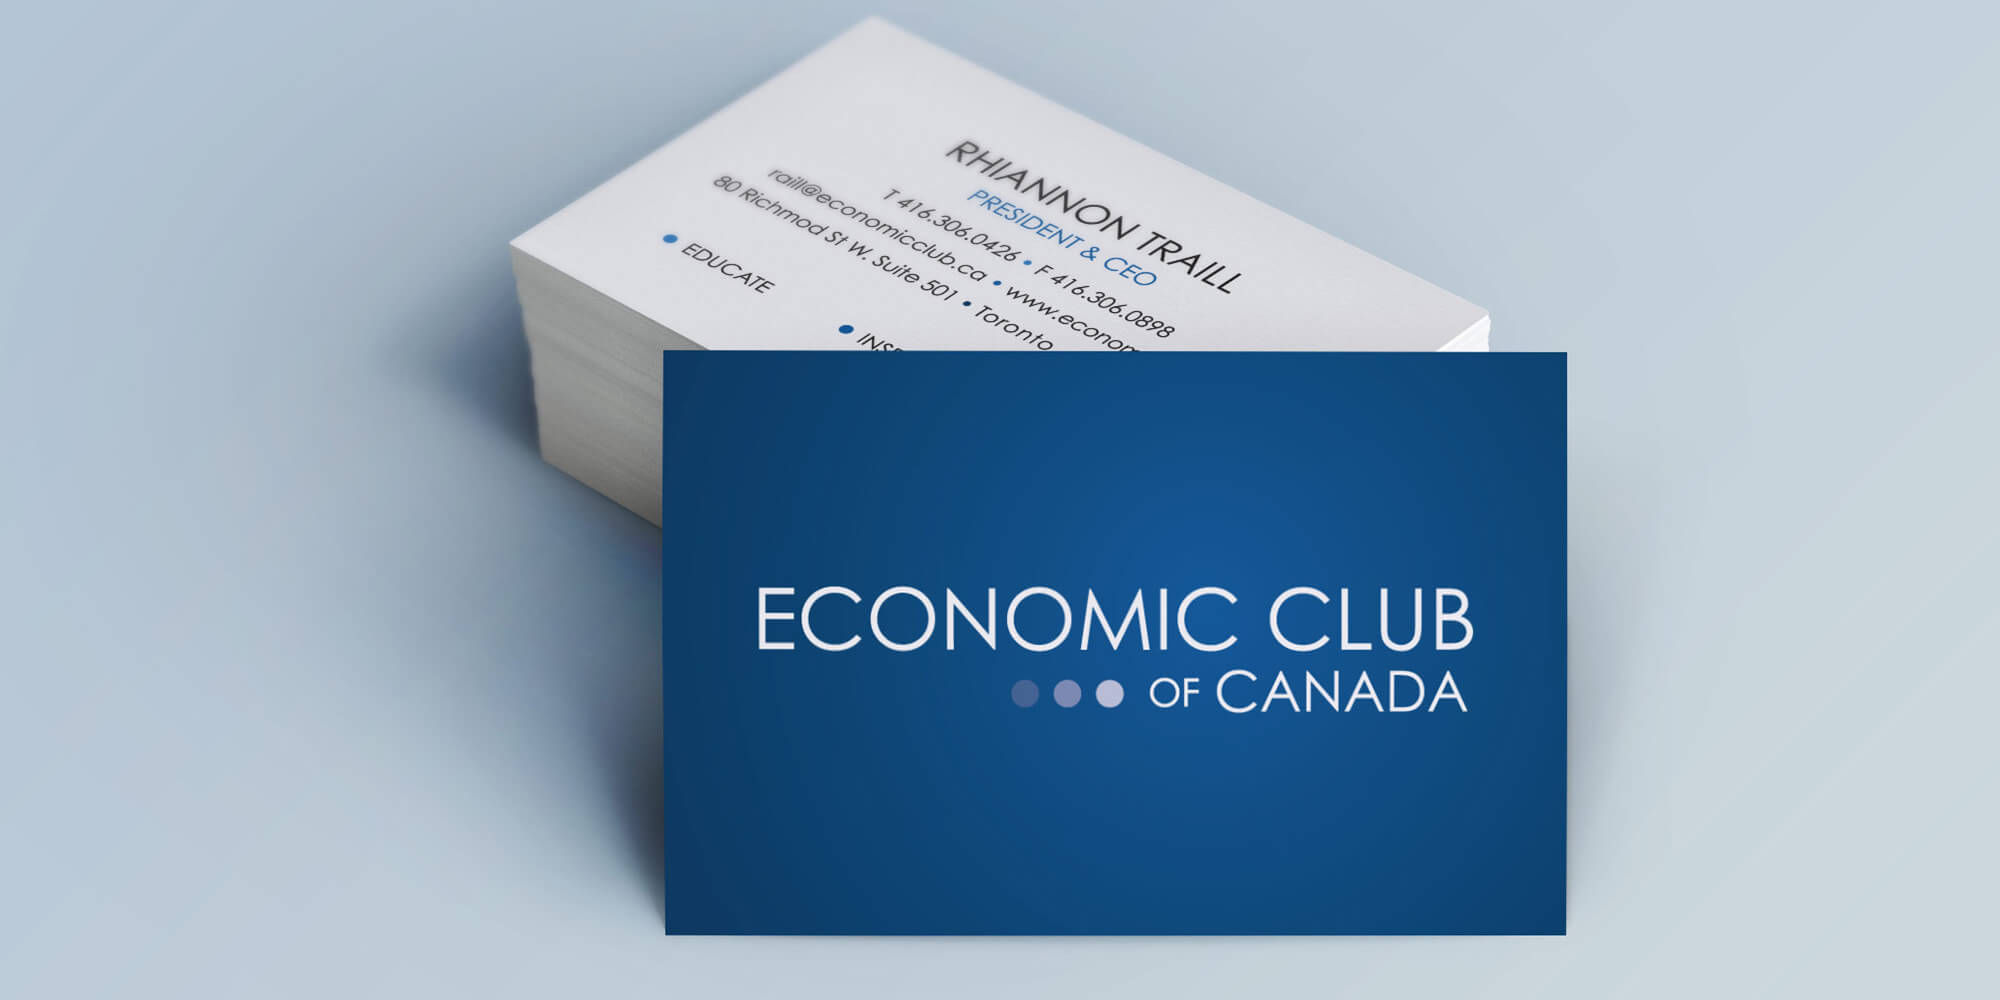 Economic Club of Canada - Brand and business card design